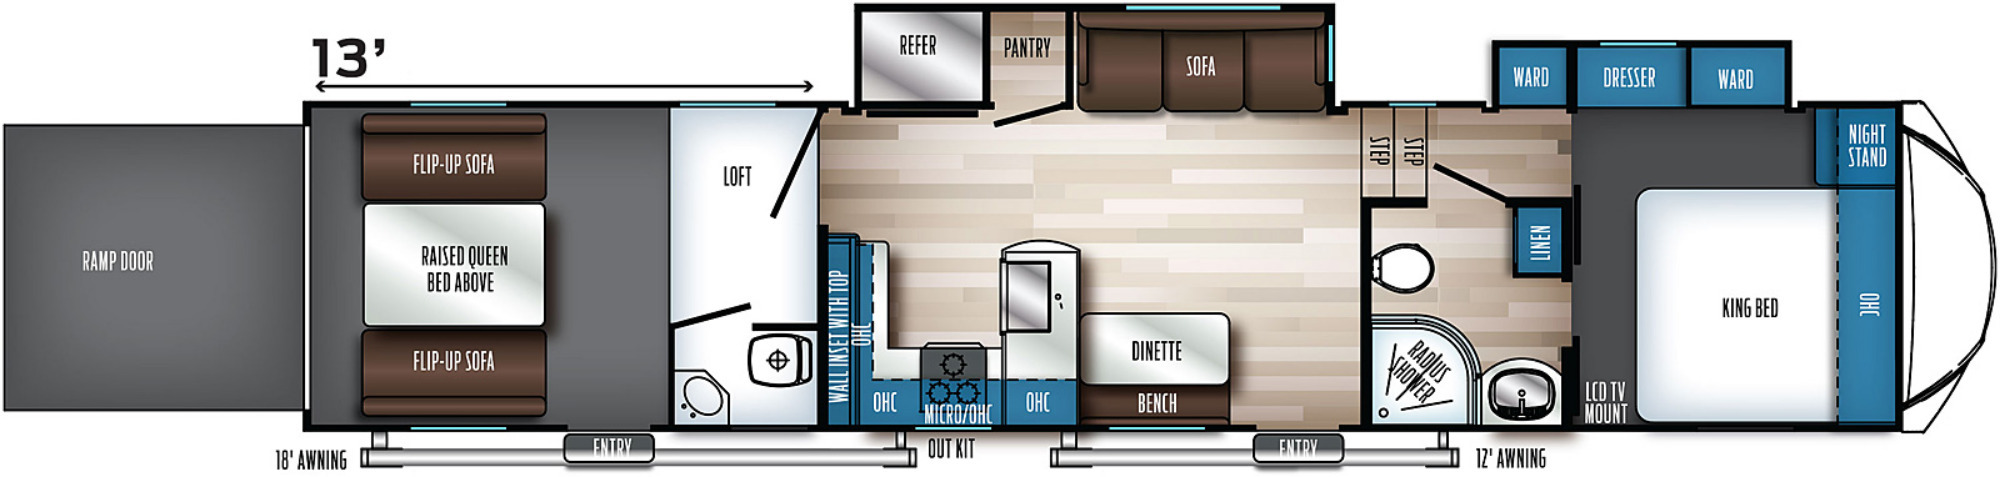 View Floor Plan for 2022 FOREST RIVER ROGUE ARMORED 371A13